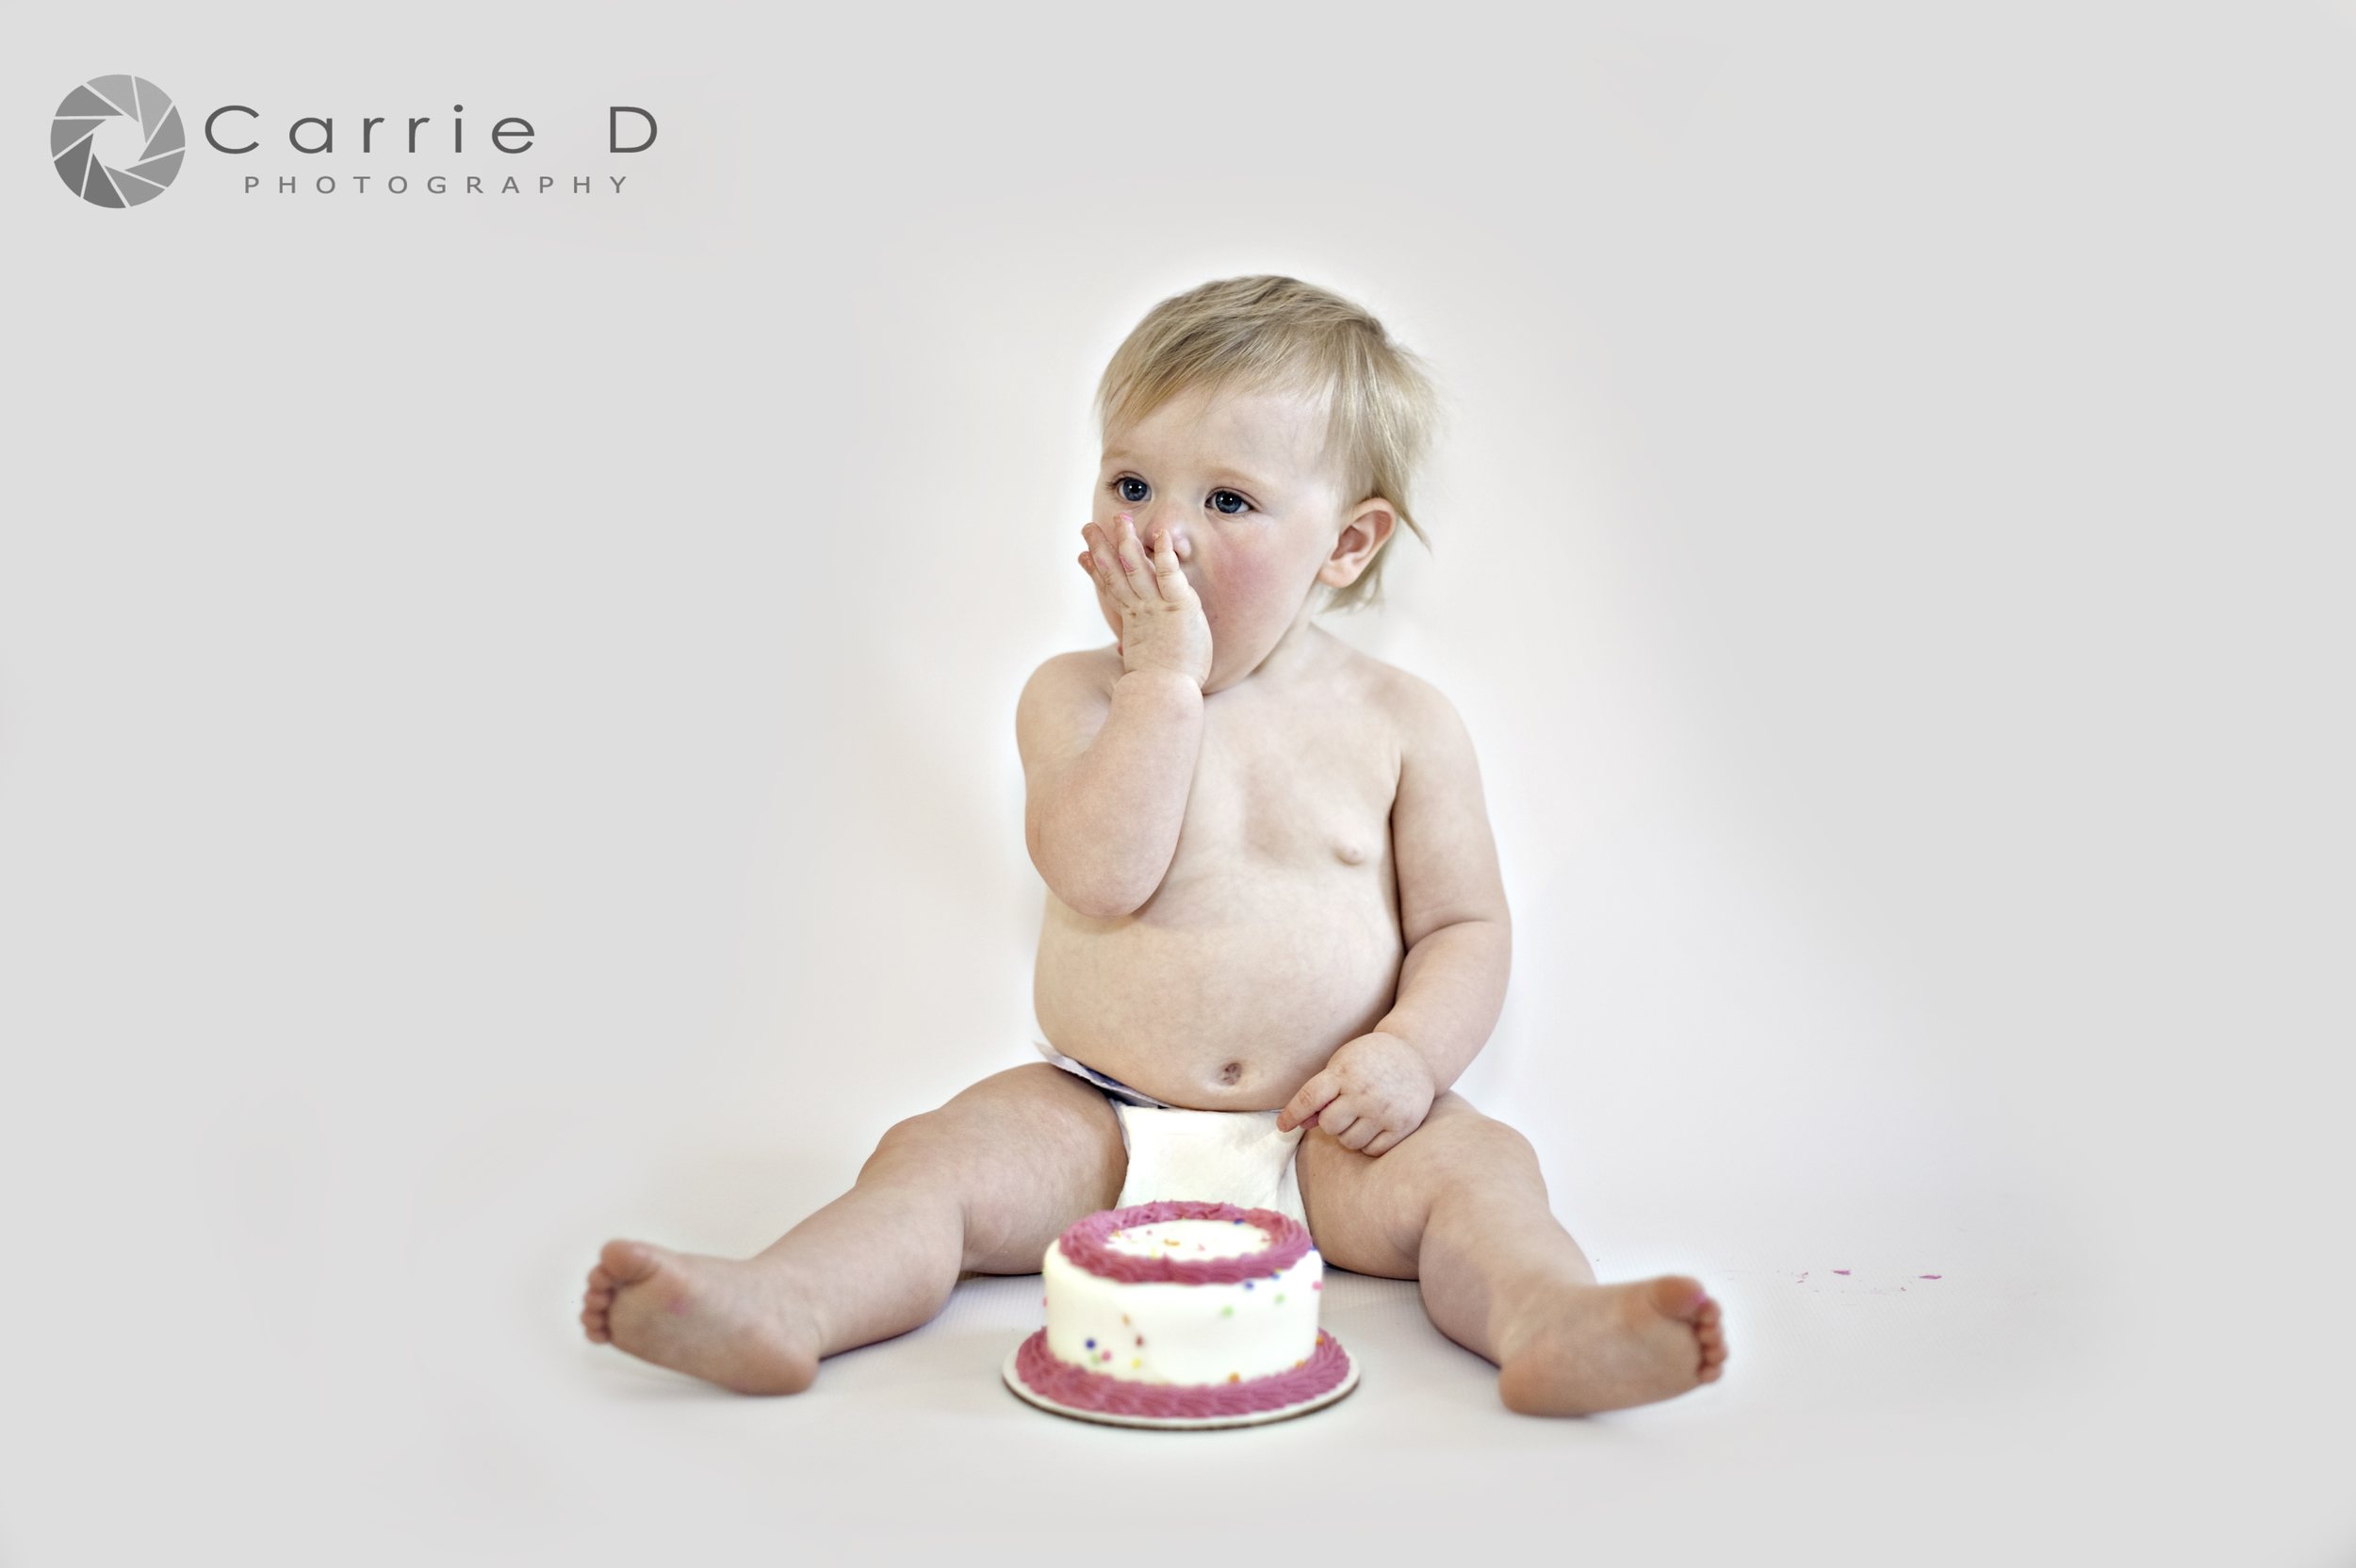 Baltimore Photographer – Baltimore Portrait Photographer – Baltimore Infant Photographer - Baltimore Newborn Photographer – Baltimore Family Photographer – Baltimore Milestone Photographer – Baltimore Cake Smash Photographer -  Baltimore Natural Light Photographer – Baltimore Lifestyle Photographer – Baltimore Natural Light Portrait - Maryland Photographer – Maryland Portrait Photographer – Maryland Family Photographer - Maryland Newborn Photographer – Maryland Infant Photographer – Maryland Milestone Photographer – Maryland Cake Smash Photographer - Maryland Natural Light Photographer – Maryland Lifestyle Photographer – Maryland Natural Light Portrait - Riley Cake_DSC_0178B